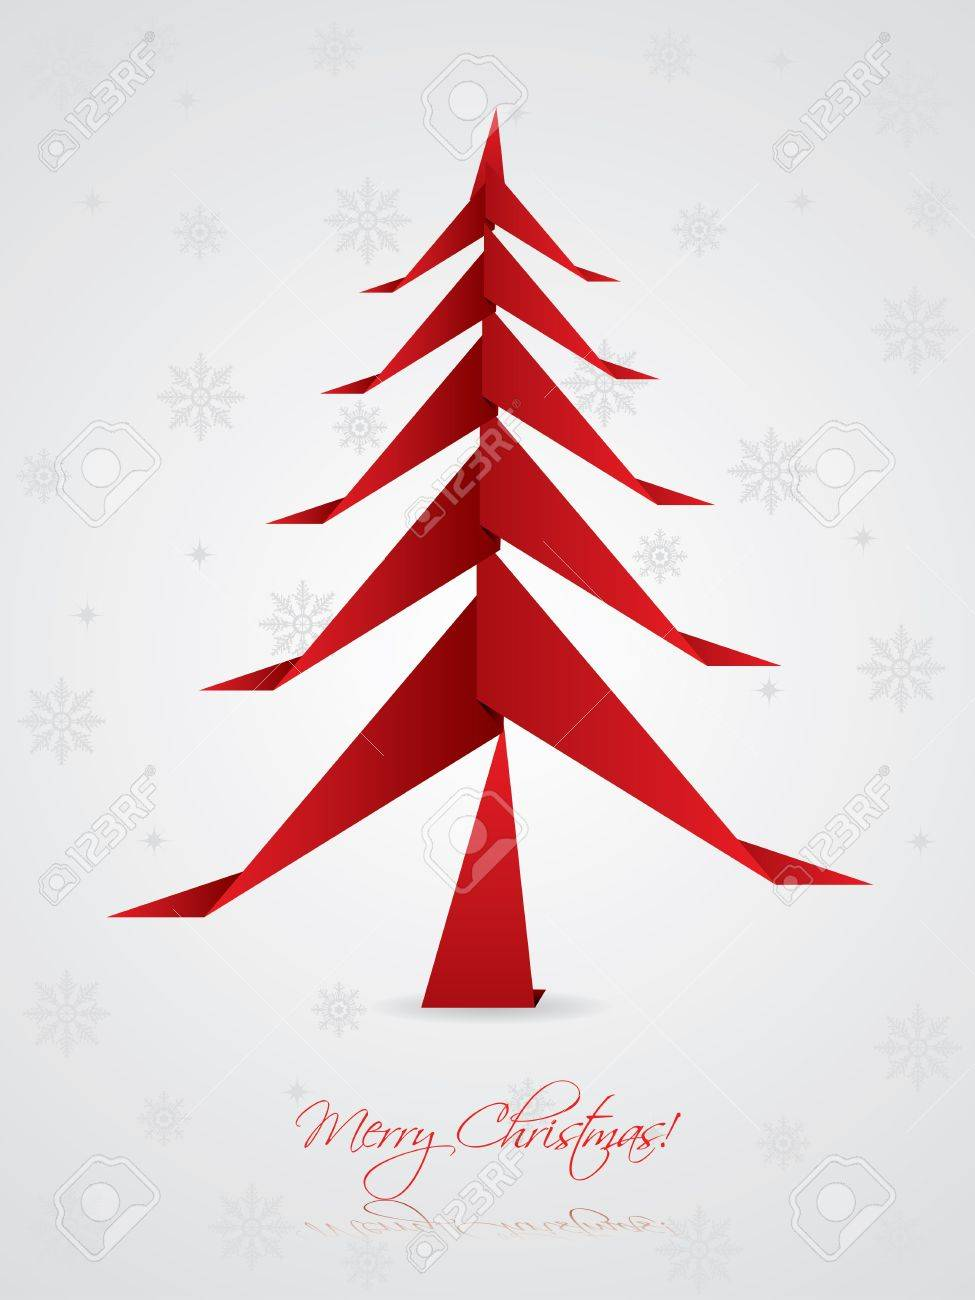 Christmas greeting card design with origami tree Stock Vector - 15193235